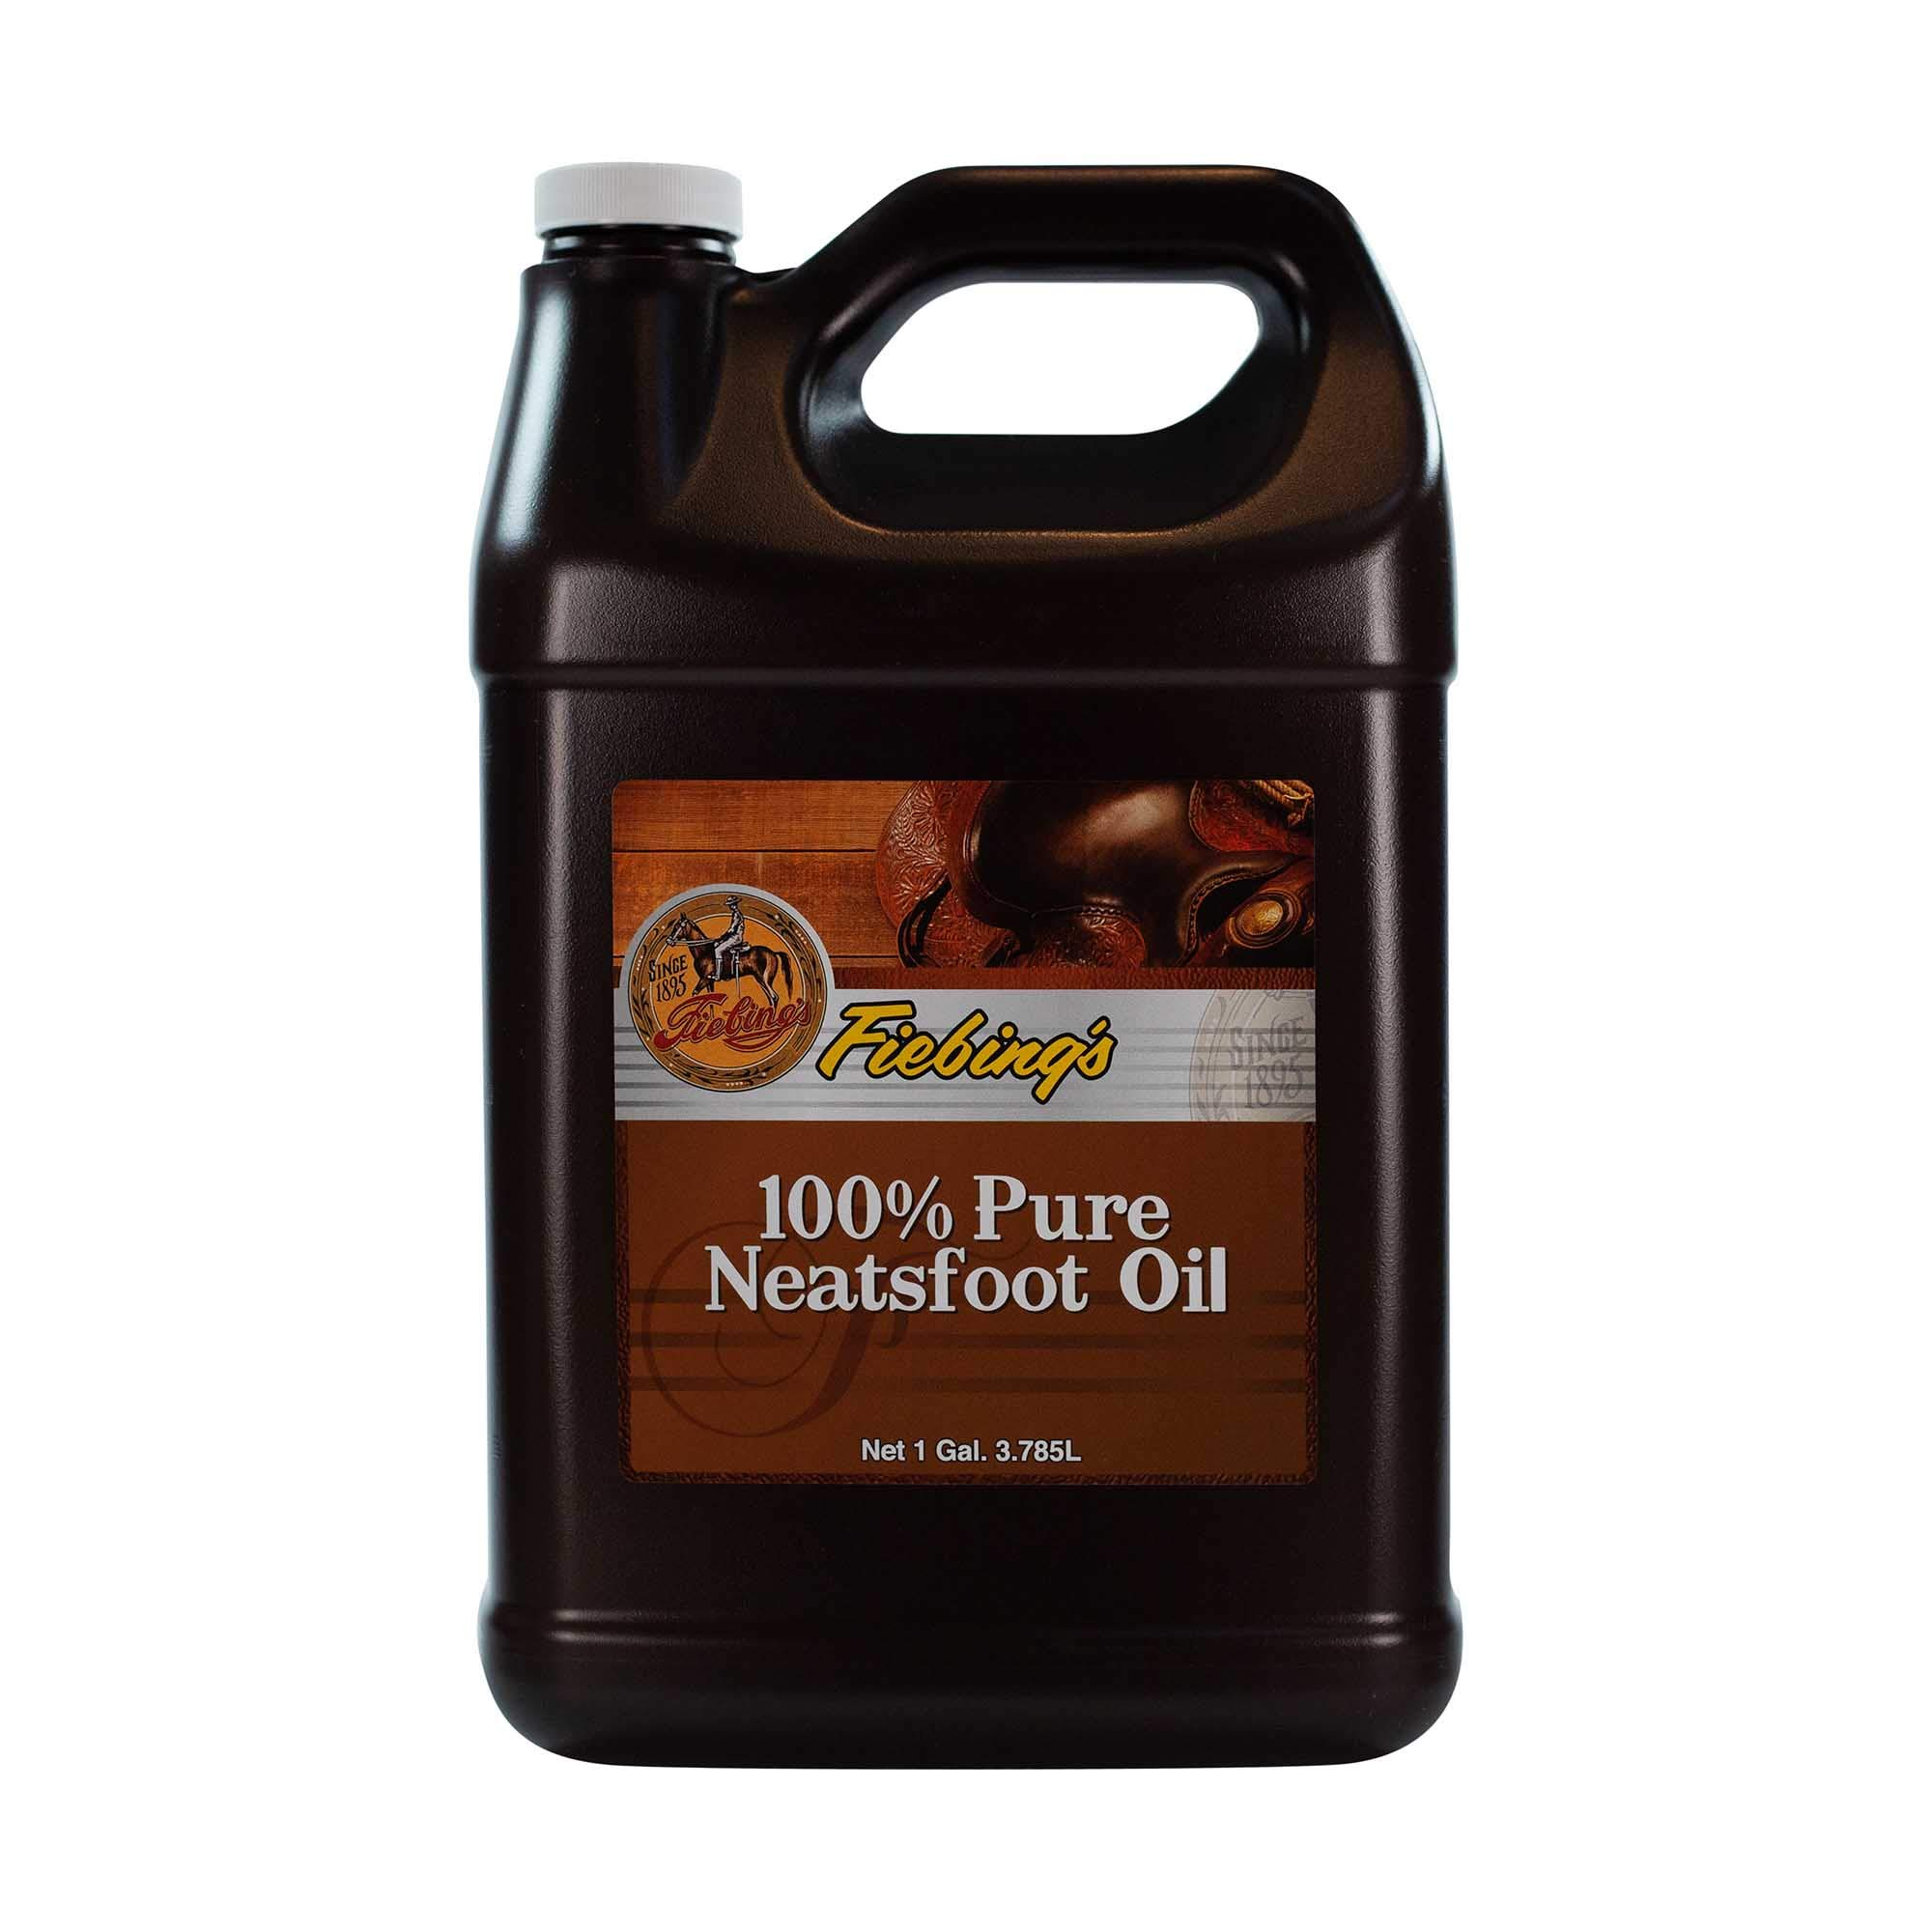 Fiebings - 100% Pure Neatsfoot Oil , Natural Preservative , Various Sizes, 1 Gallon